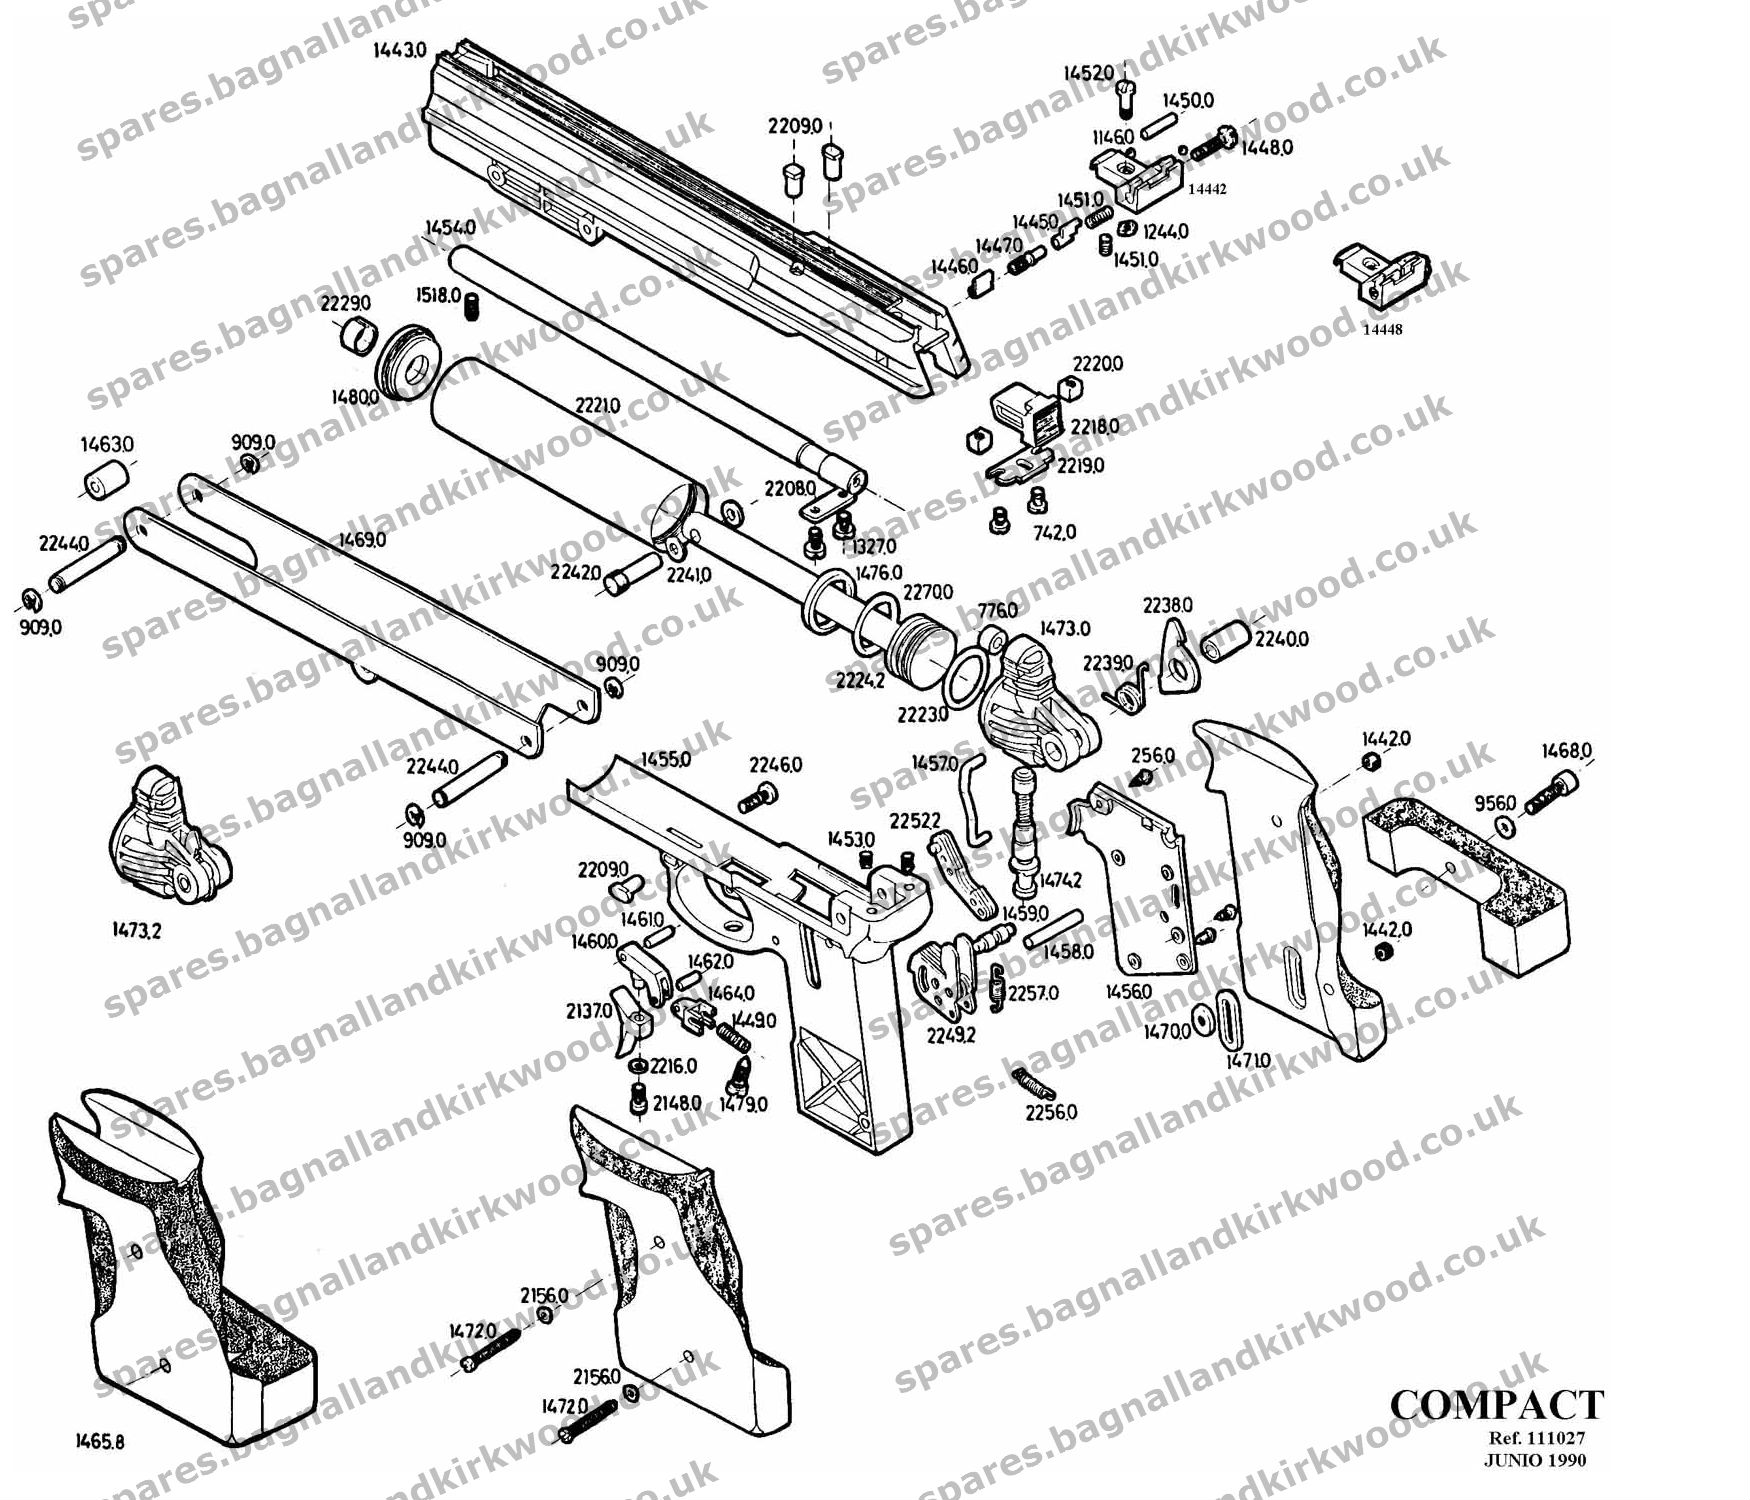 Breathtaking Daisy Model 880 Parts Diagram Gallery - Best Image Wire ...